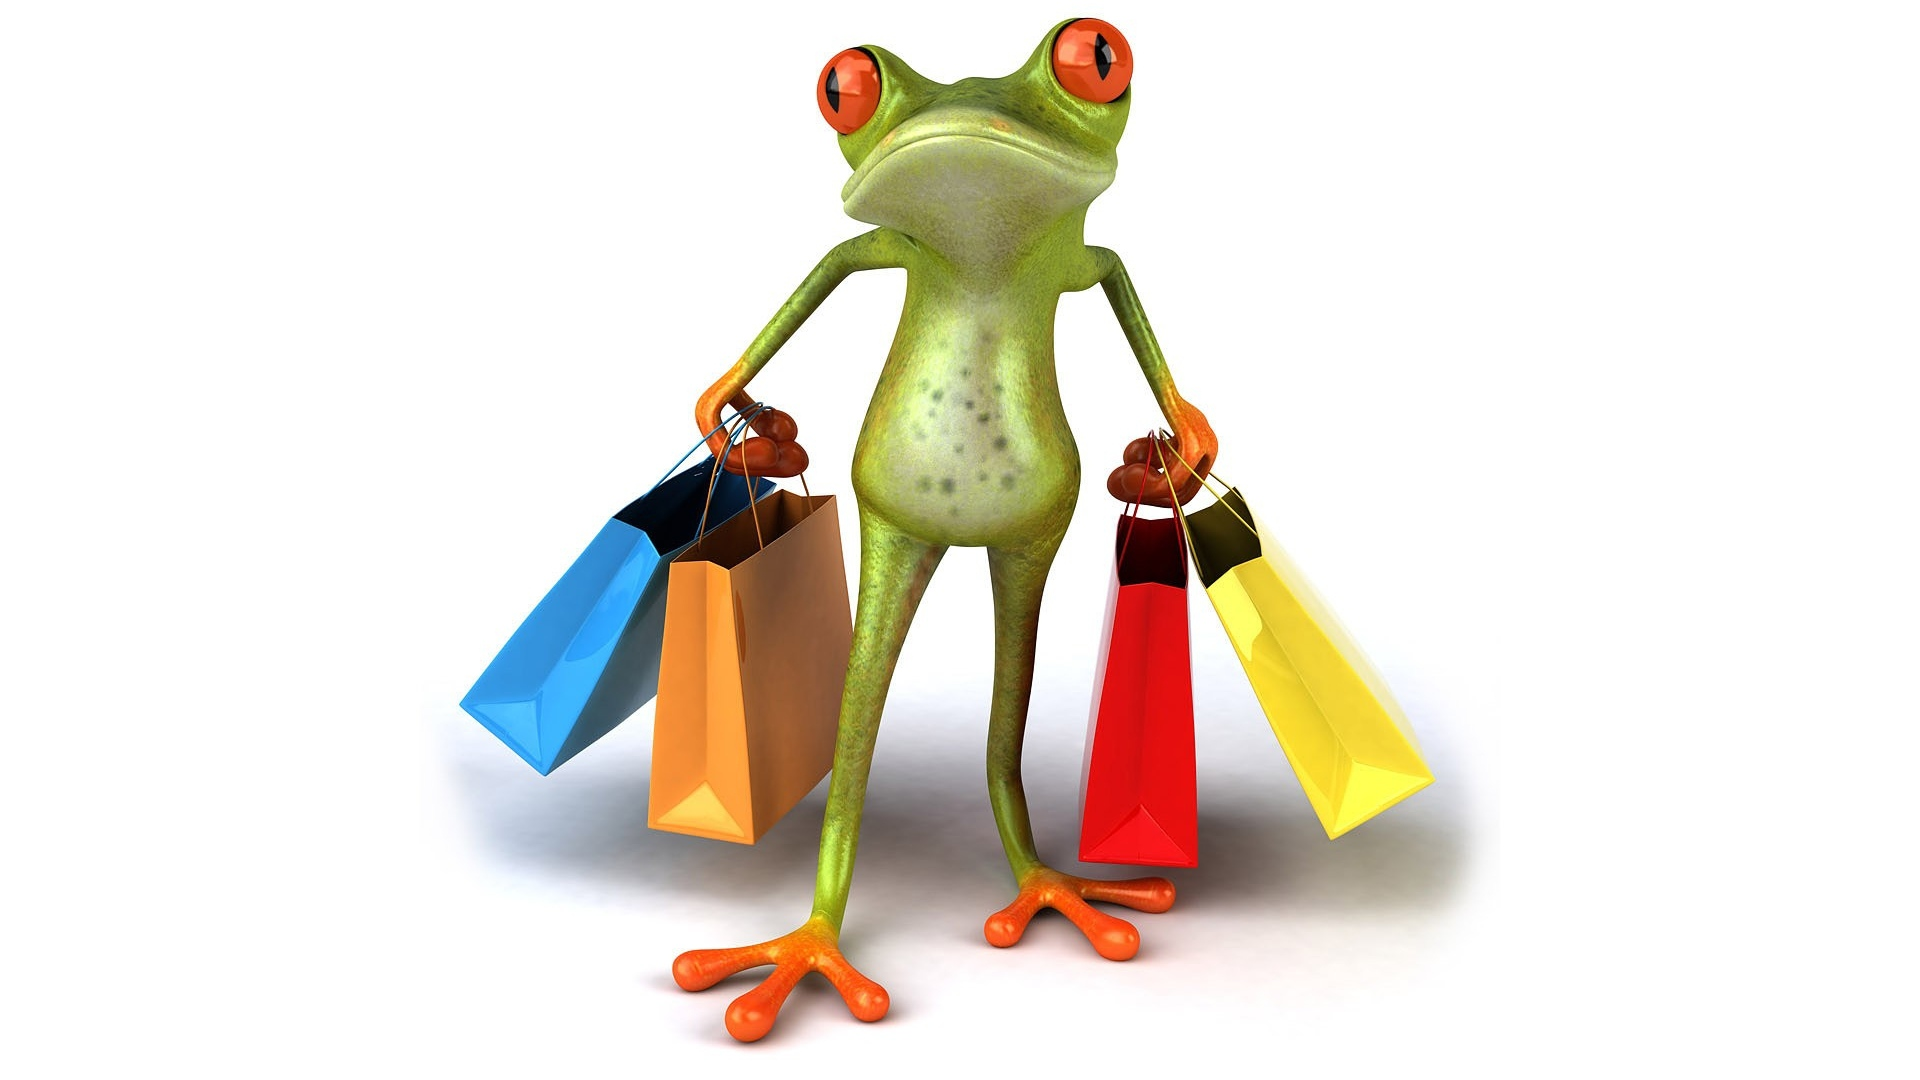 Get The Latest Frog Shopping Bags News Pictures And Videos Learn All About From Wallpapers4uorg Your Wallpaper Source